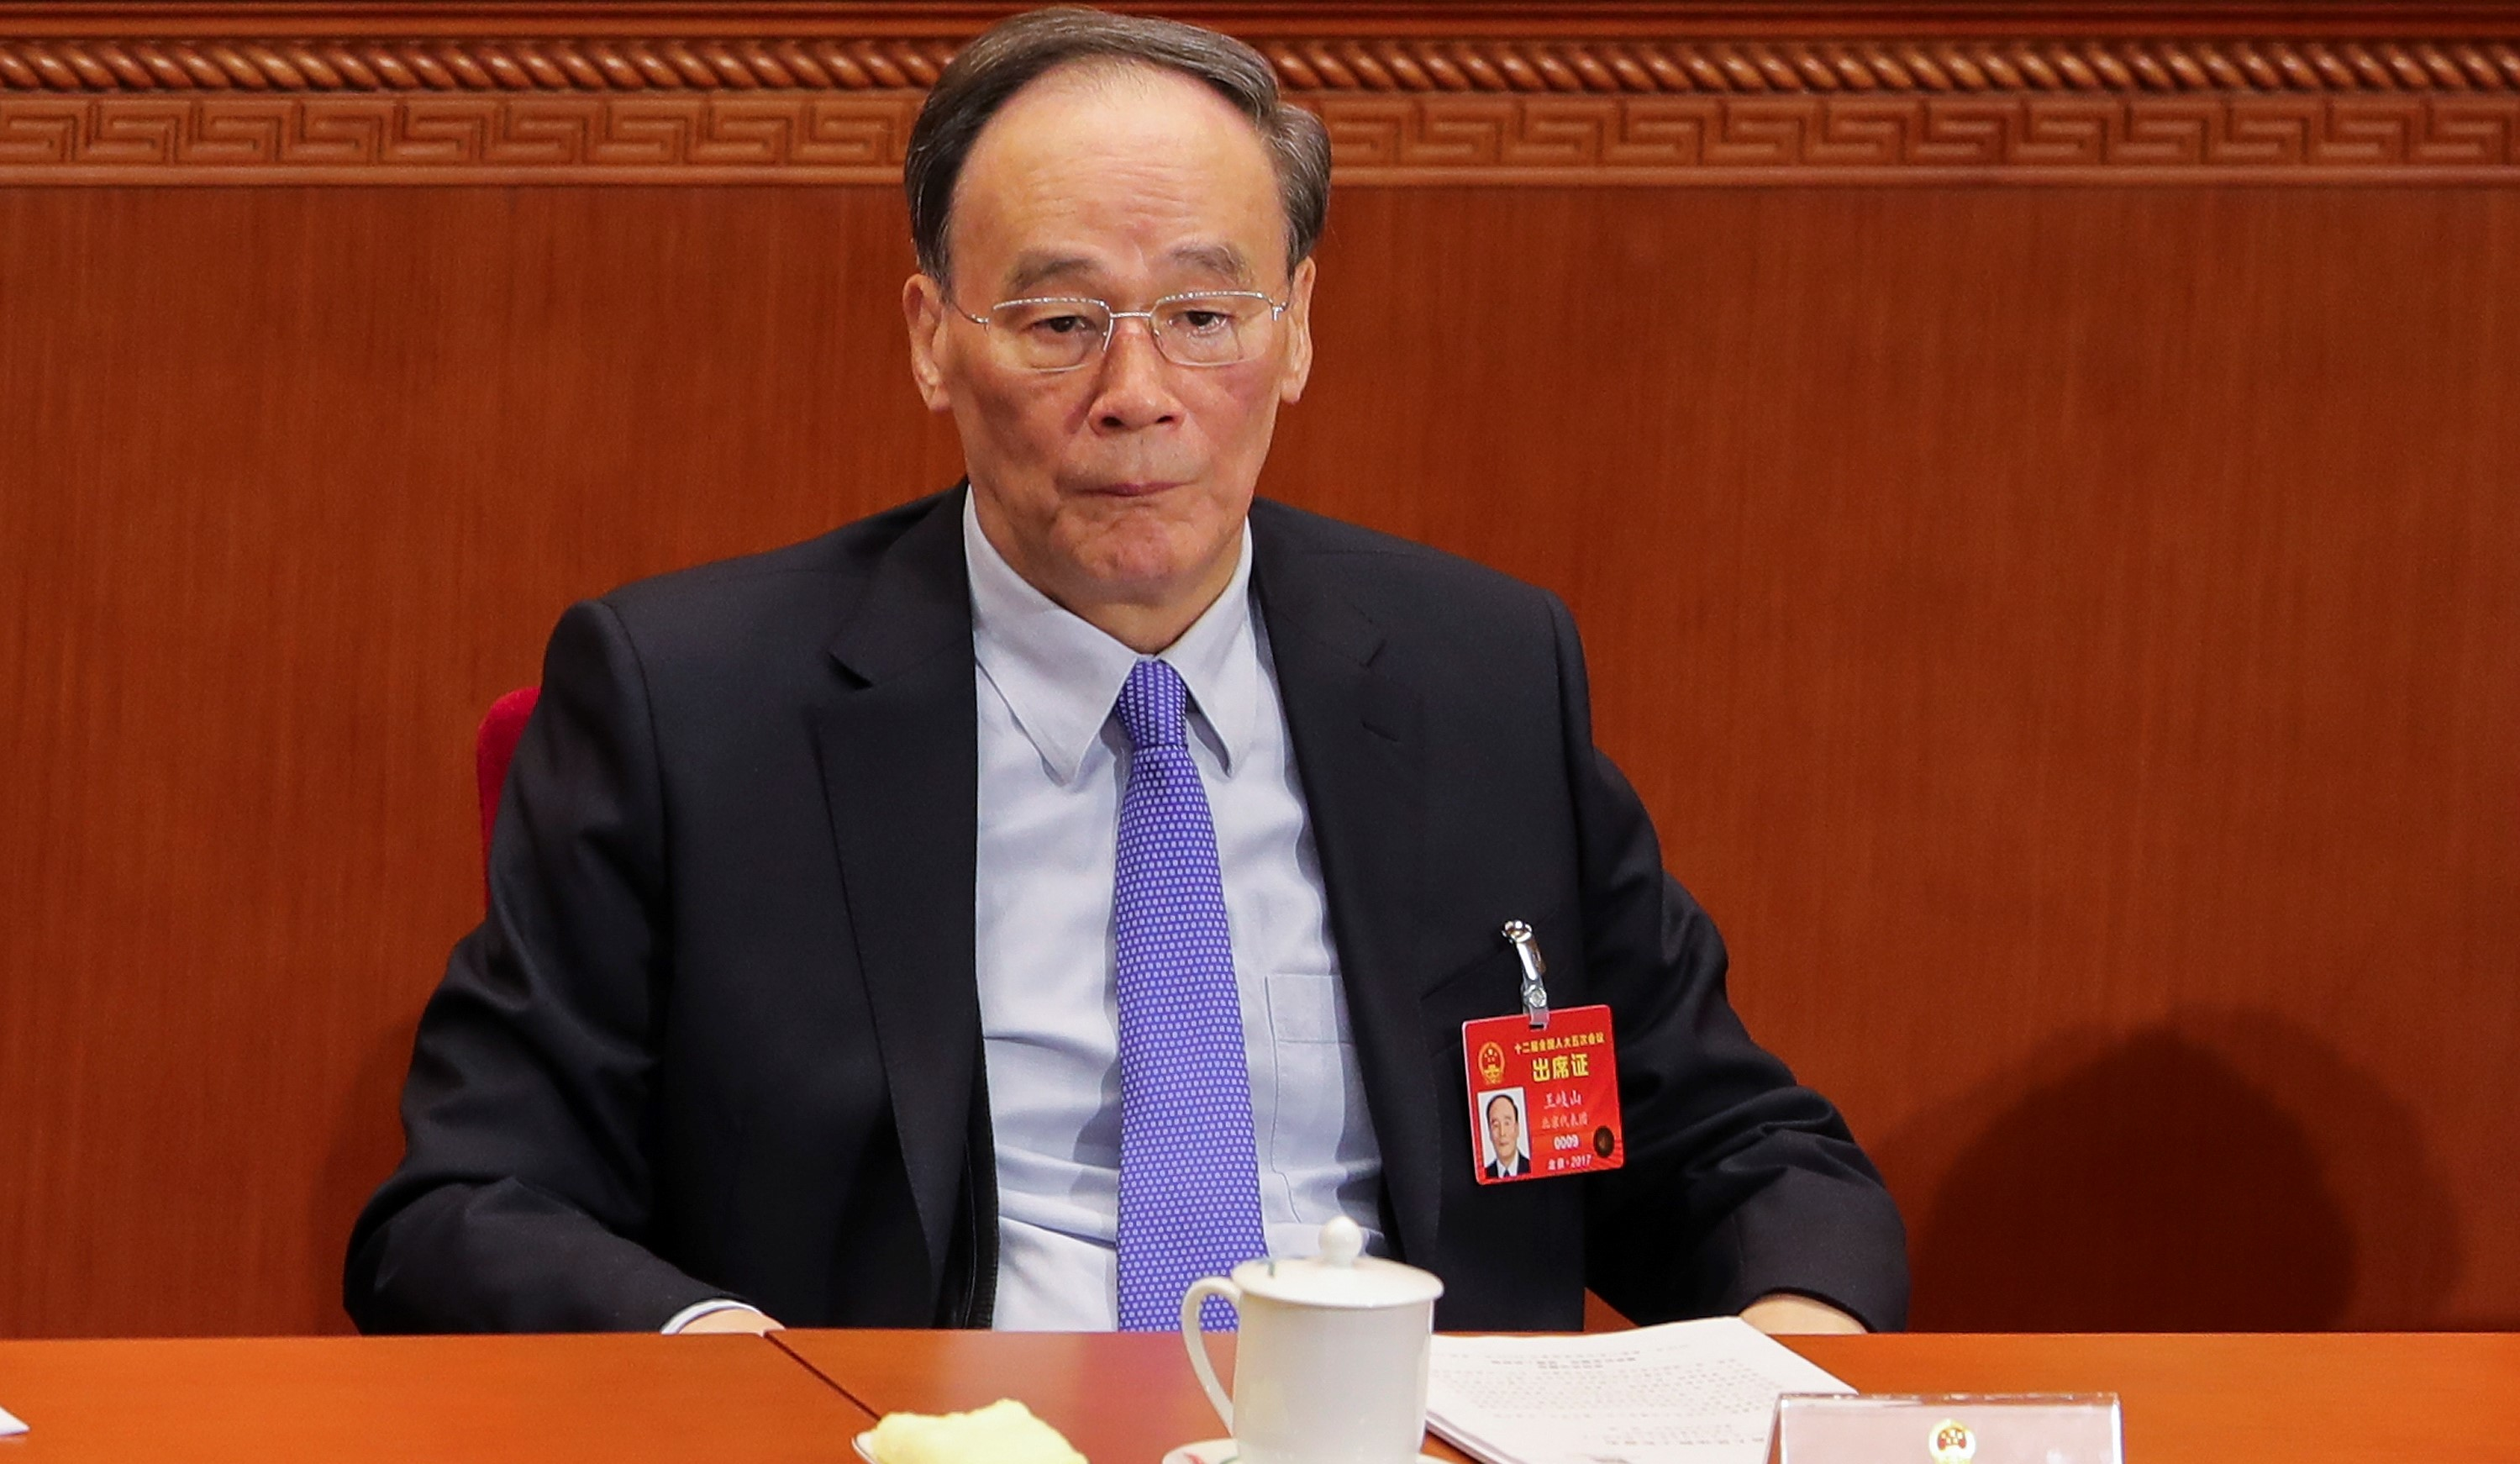 Politburo Standing Committee member Wang Qishan, March 2017 (Photo Getty Images/Lintao Zhang)